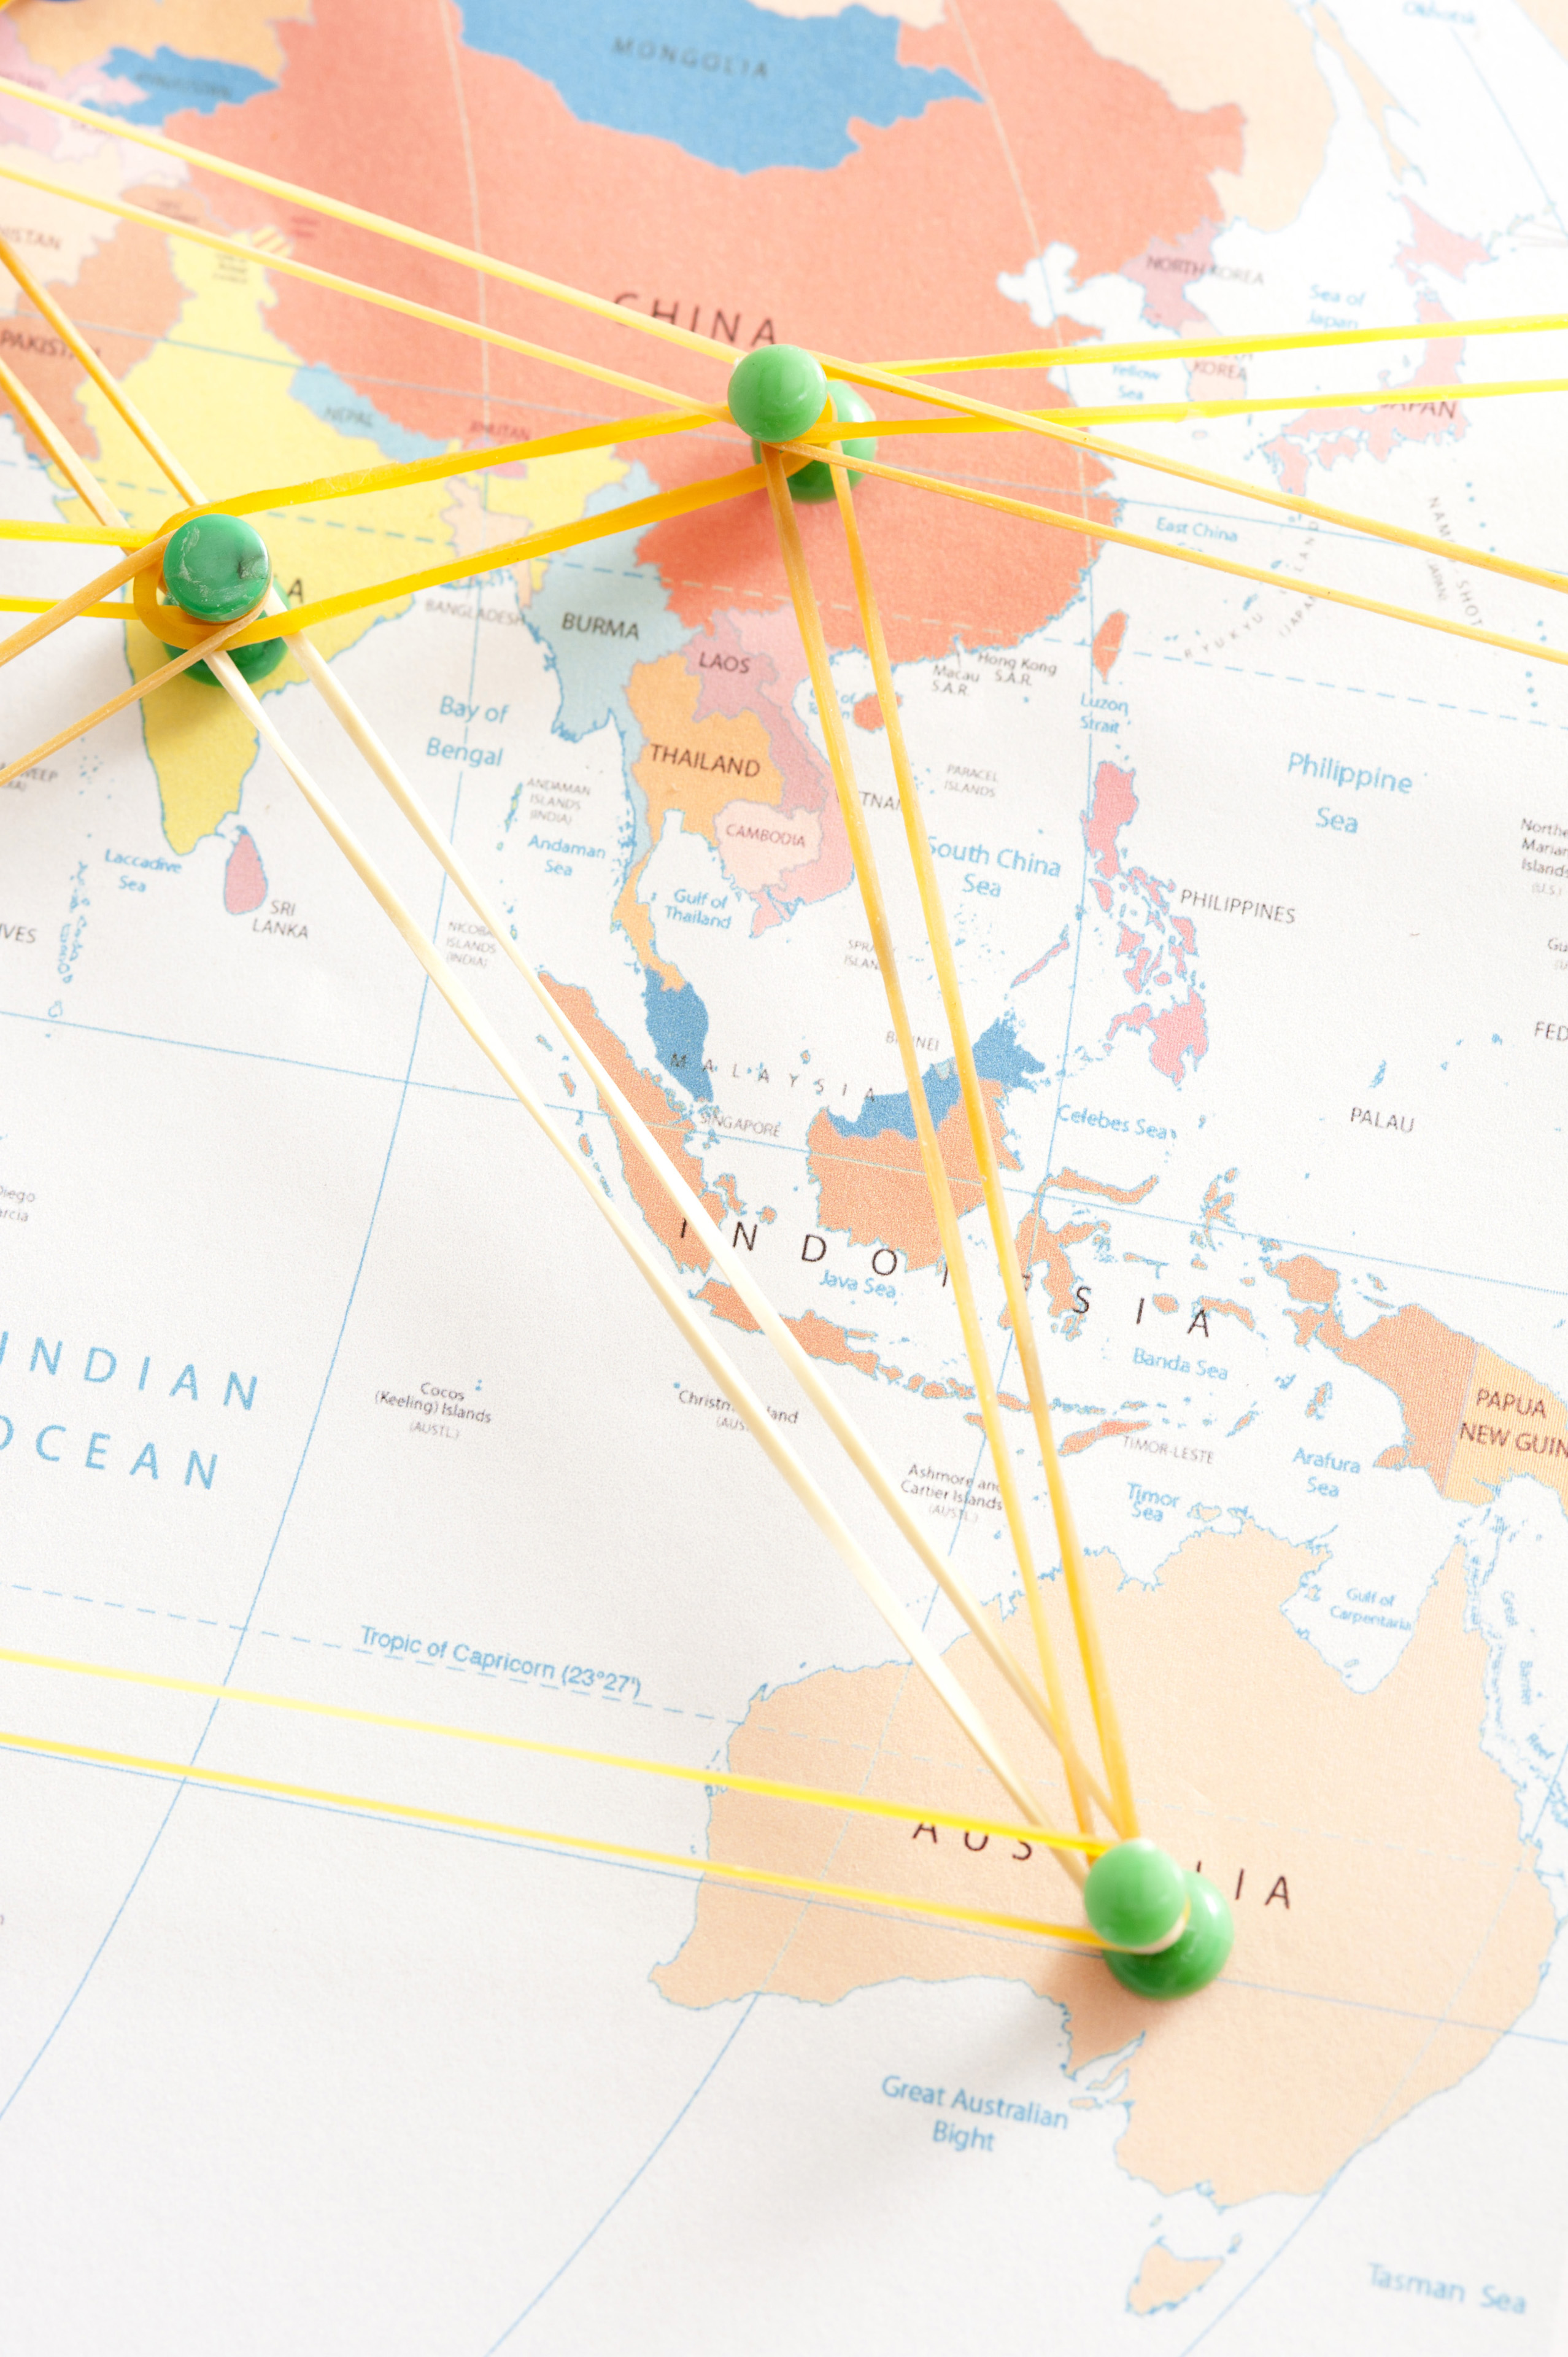 Communications Network Concept Image Illustrated by Pins Inserted in Map of Australasia and Connected by Elastic Rubber Bands